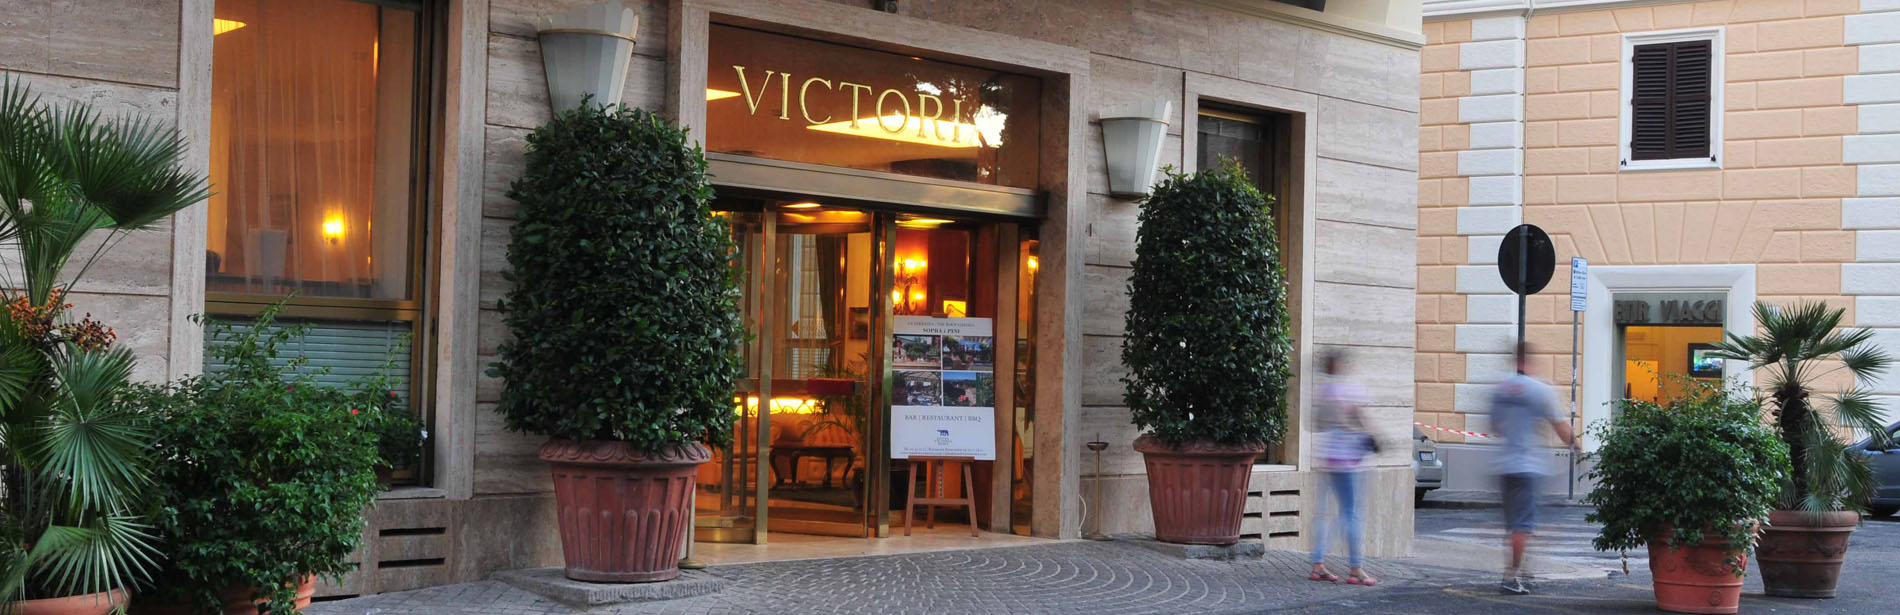 Zimmerservice - Hotel Victoria Roma